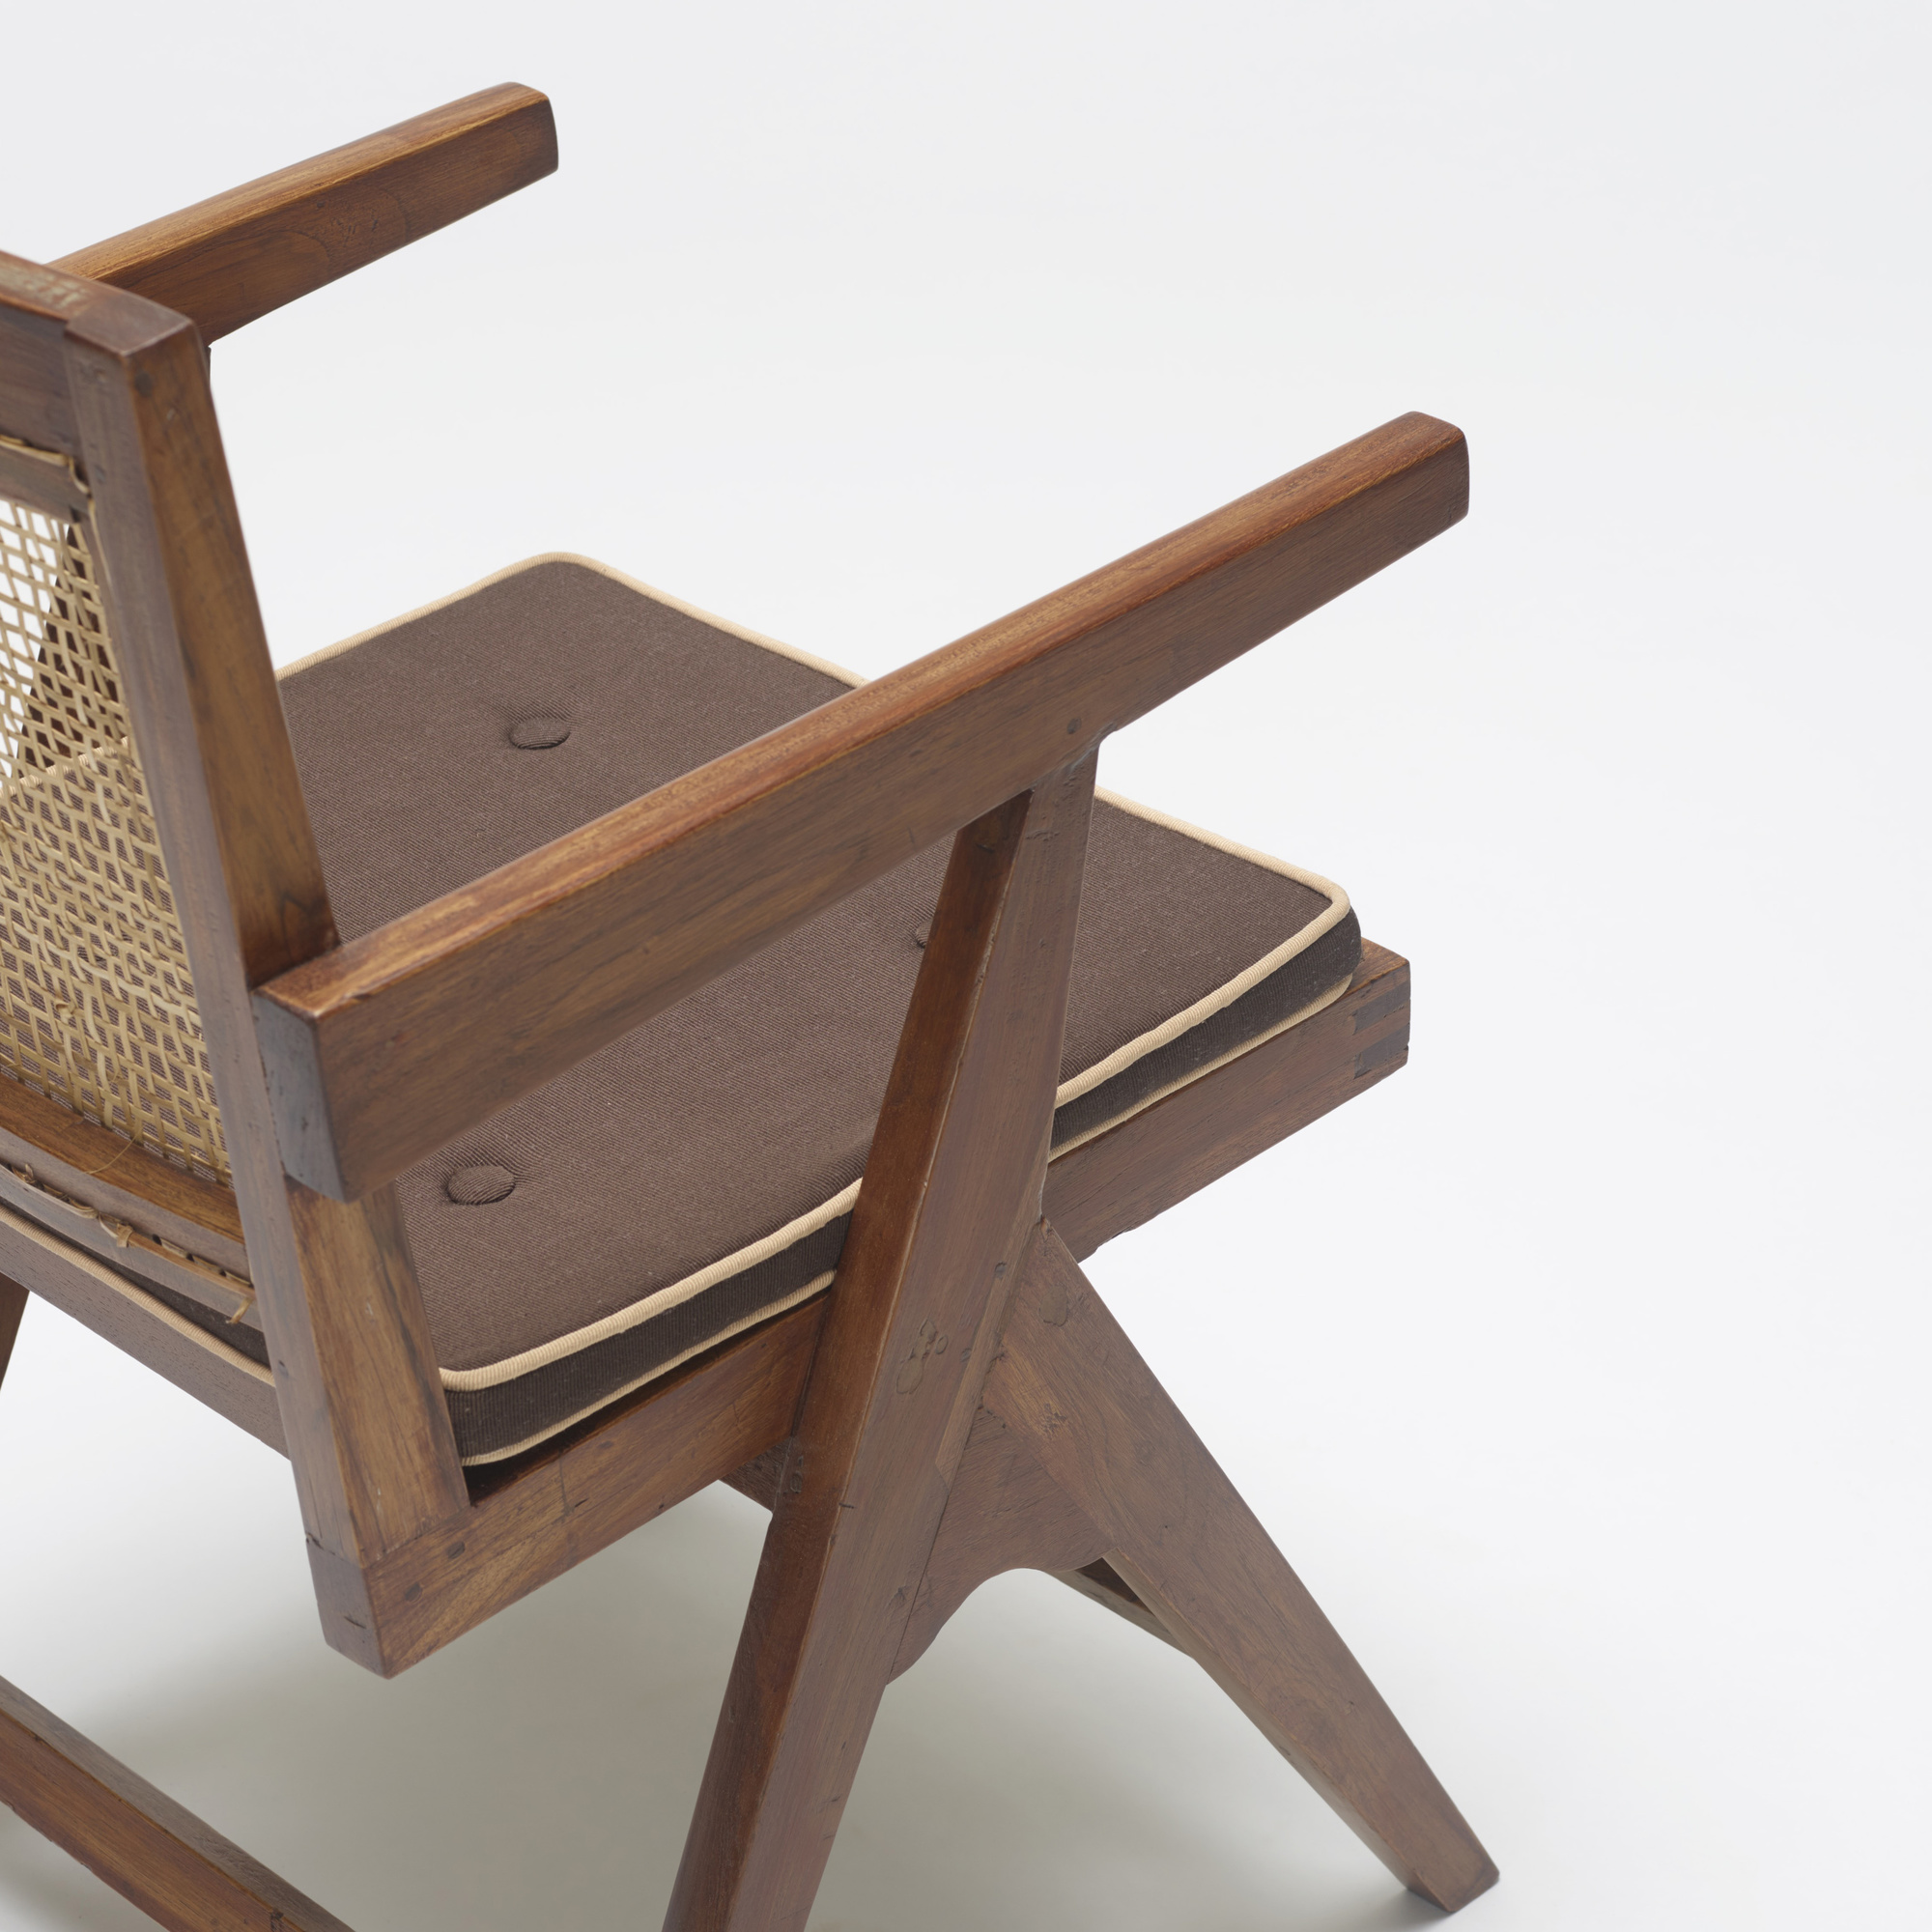 124: Pierre Jeanneret / armchair from Chandigarh (3 of 3)